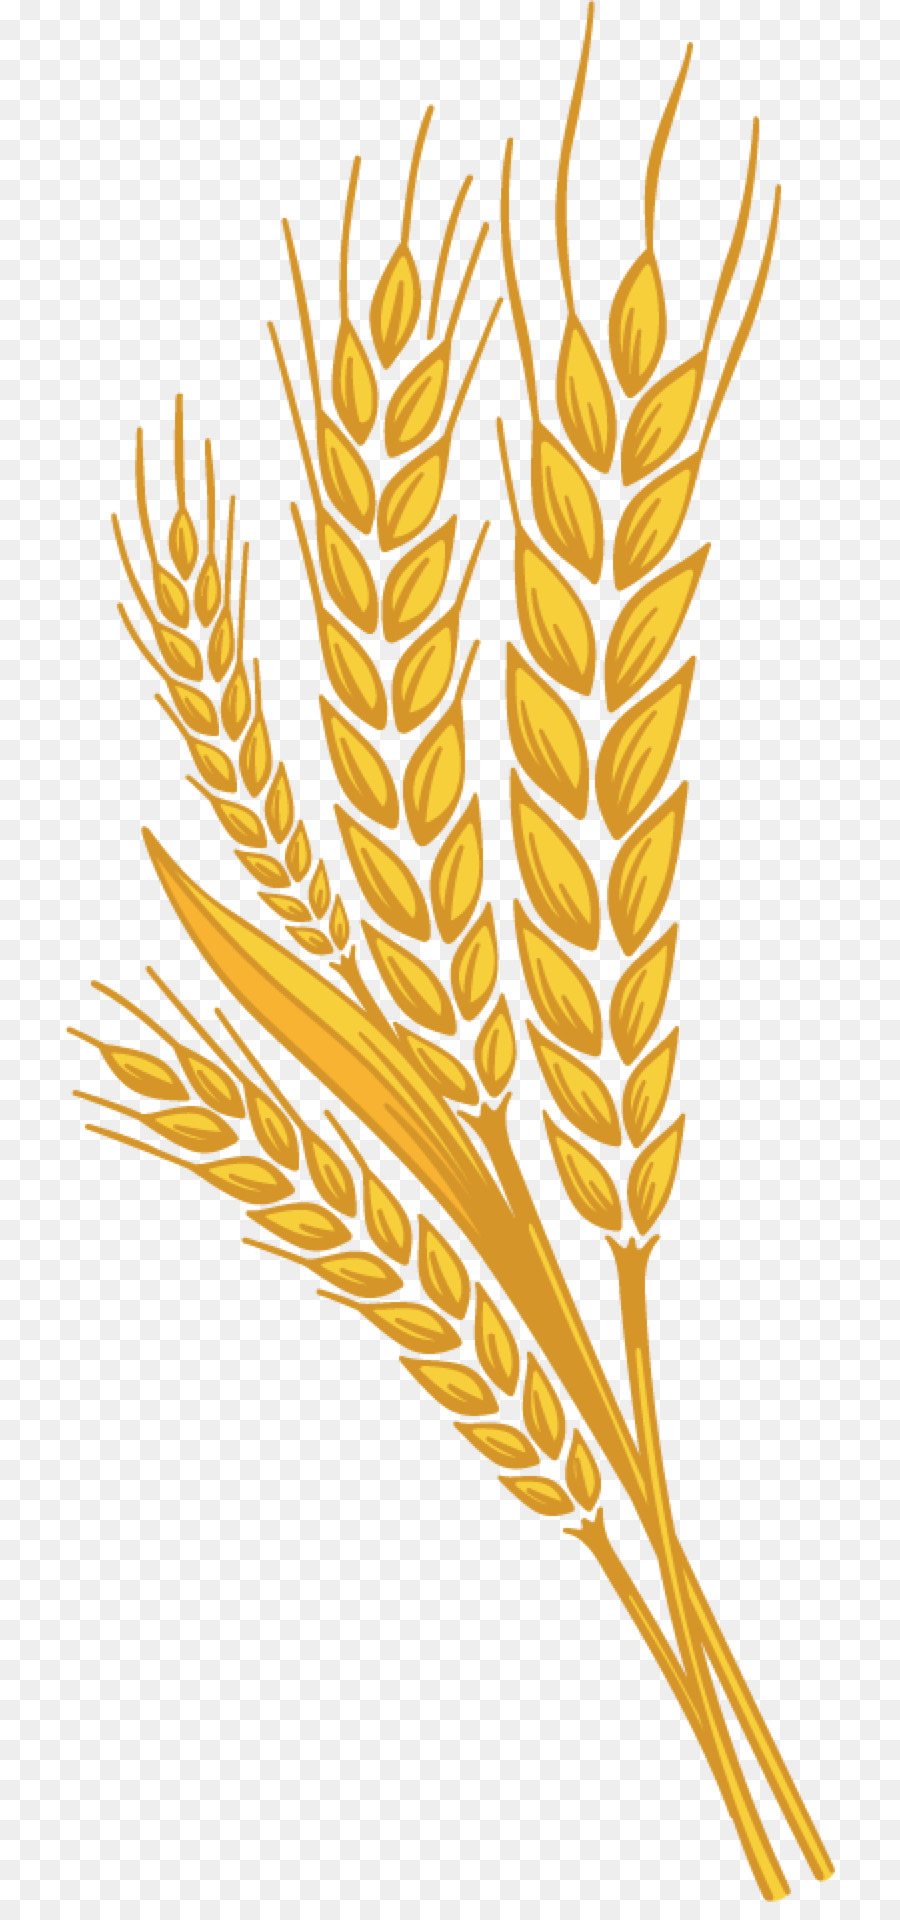 Family background plant food. Wheat clipart tree